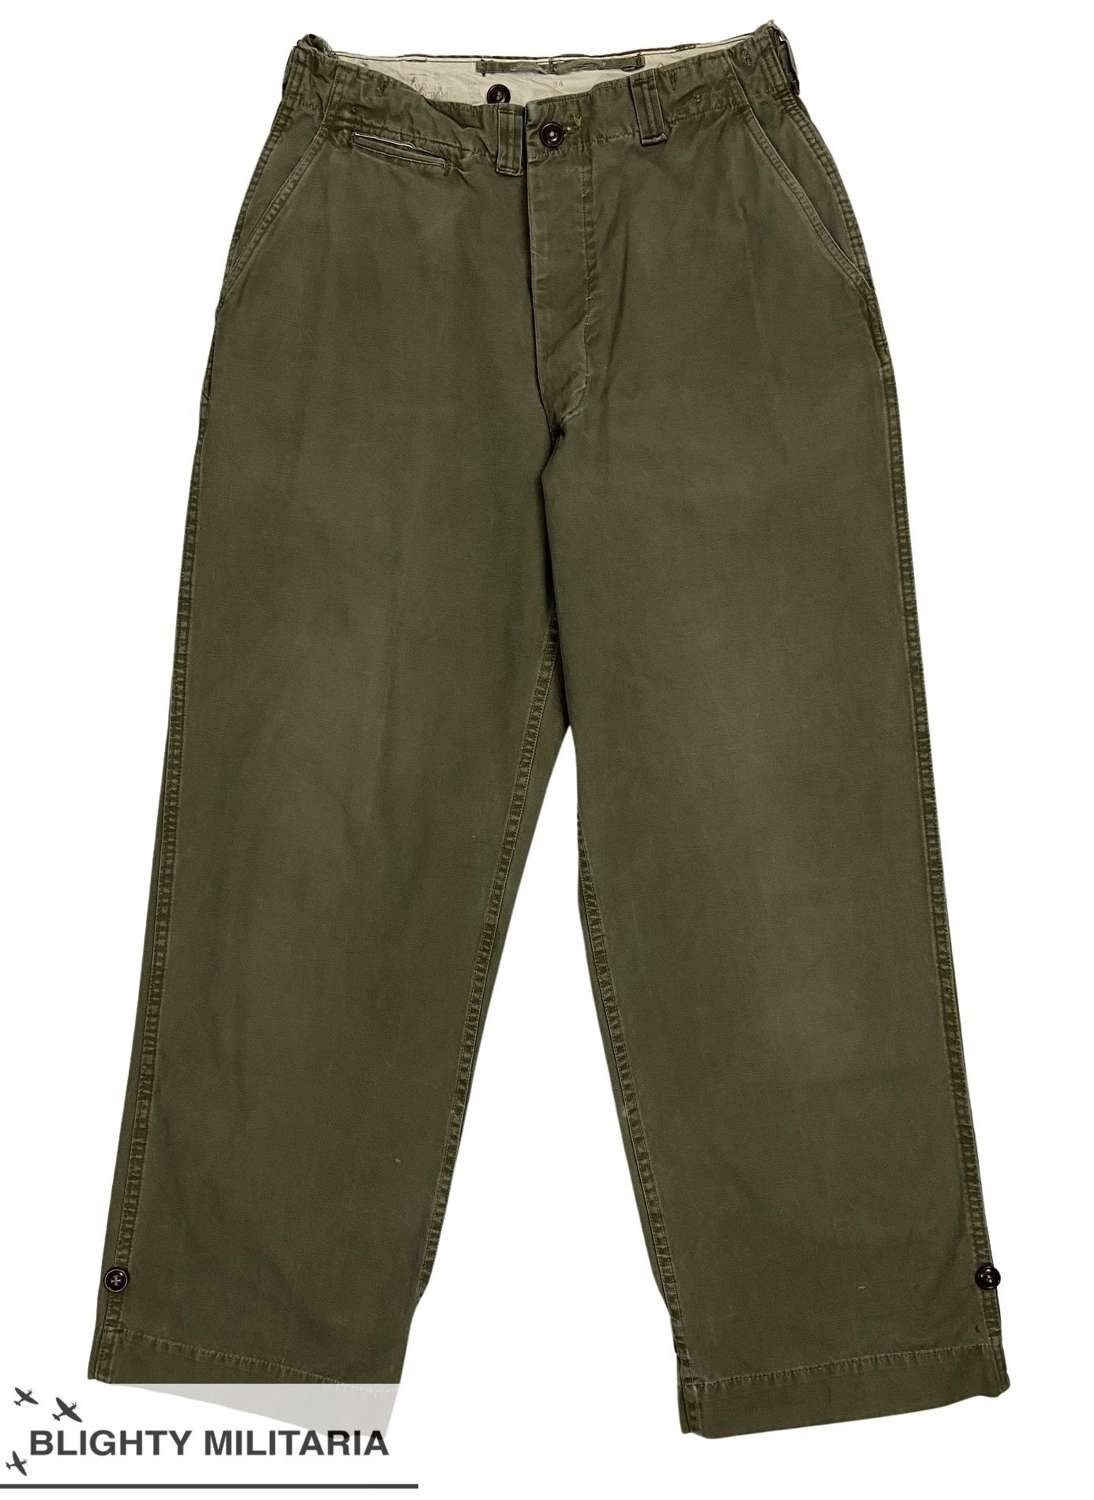 Original 1950 Dated US Army M1943 Pattern Trousers - Size 30x31